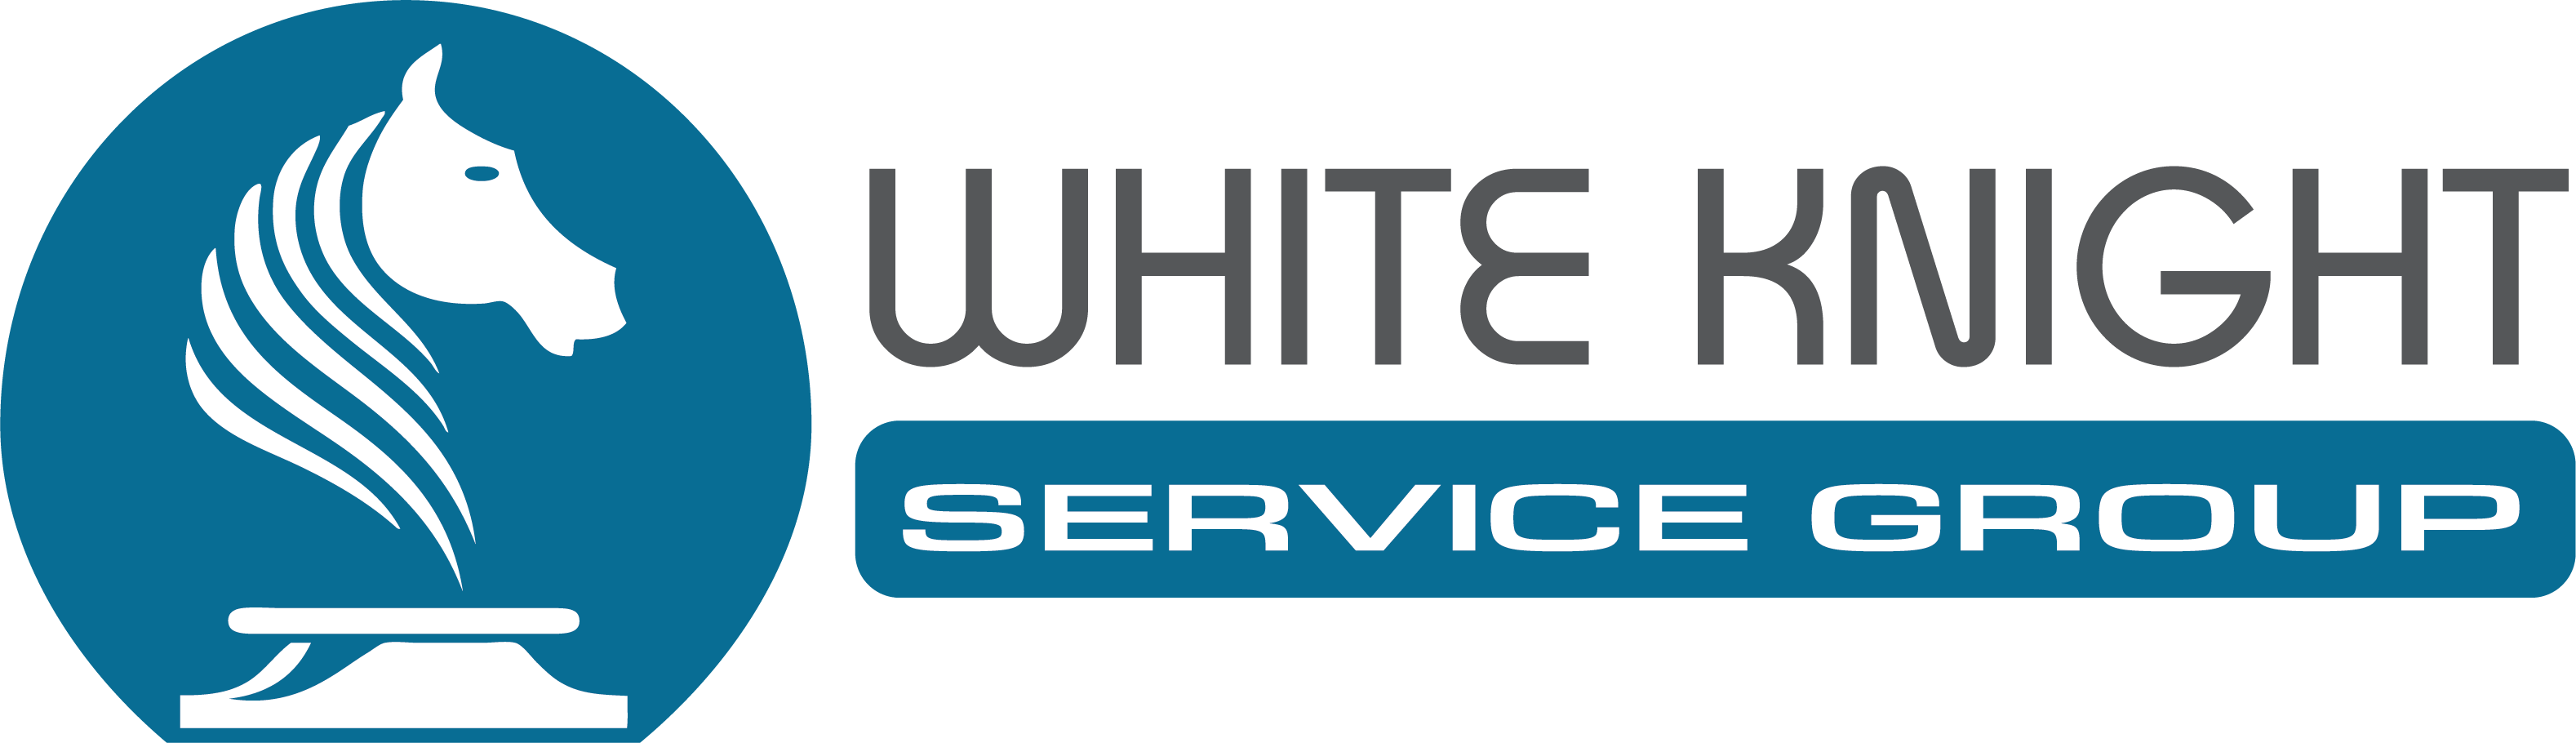 White Knight Service Group Ltd